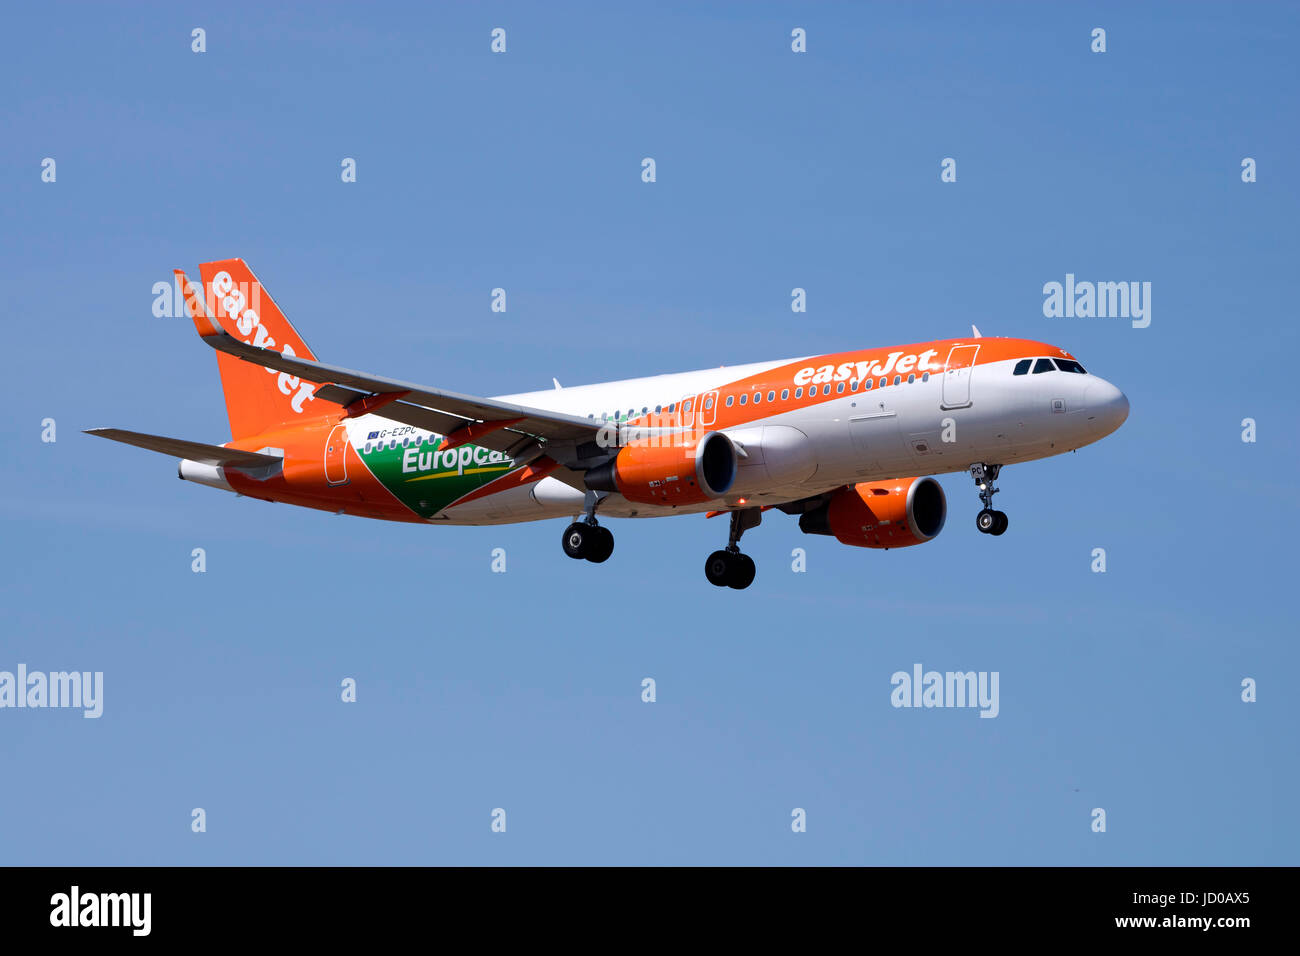 EasyJet Airline Airbus A320-214 [G-EZPC] with a special color scheme promoting Europcar. - Stock Image